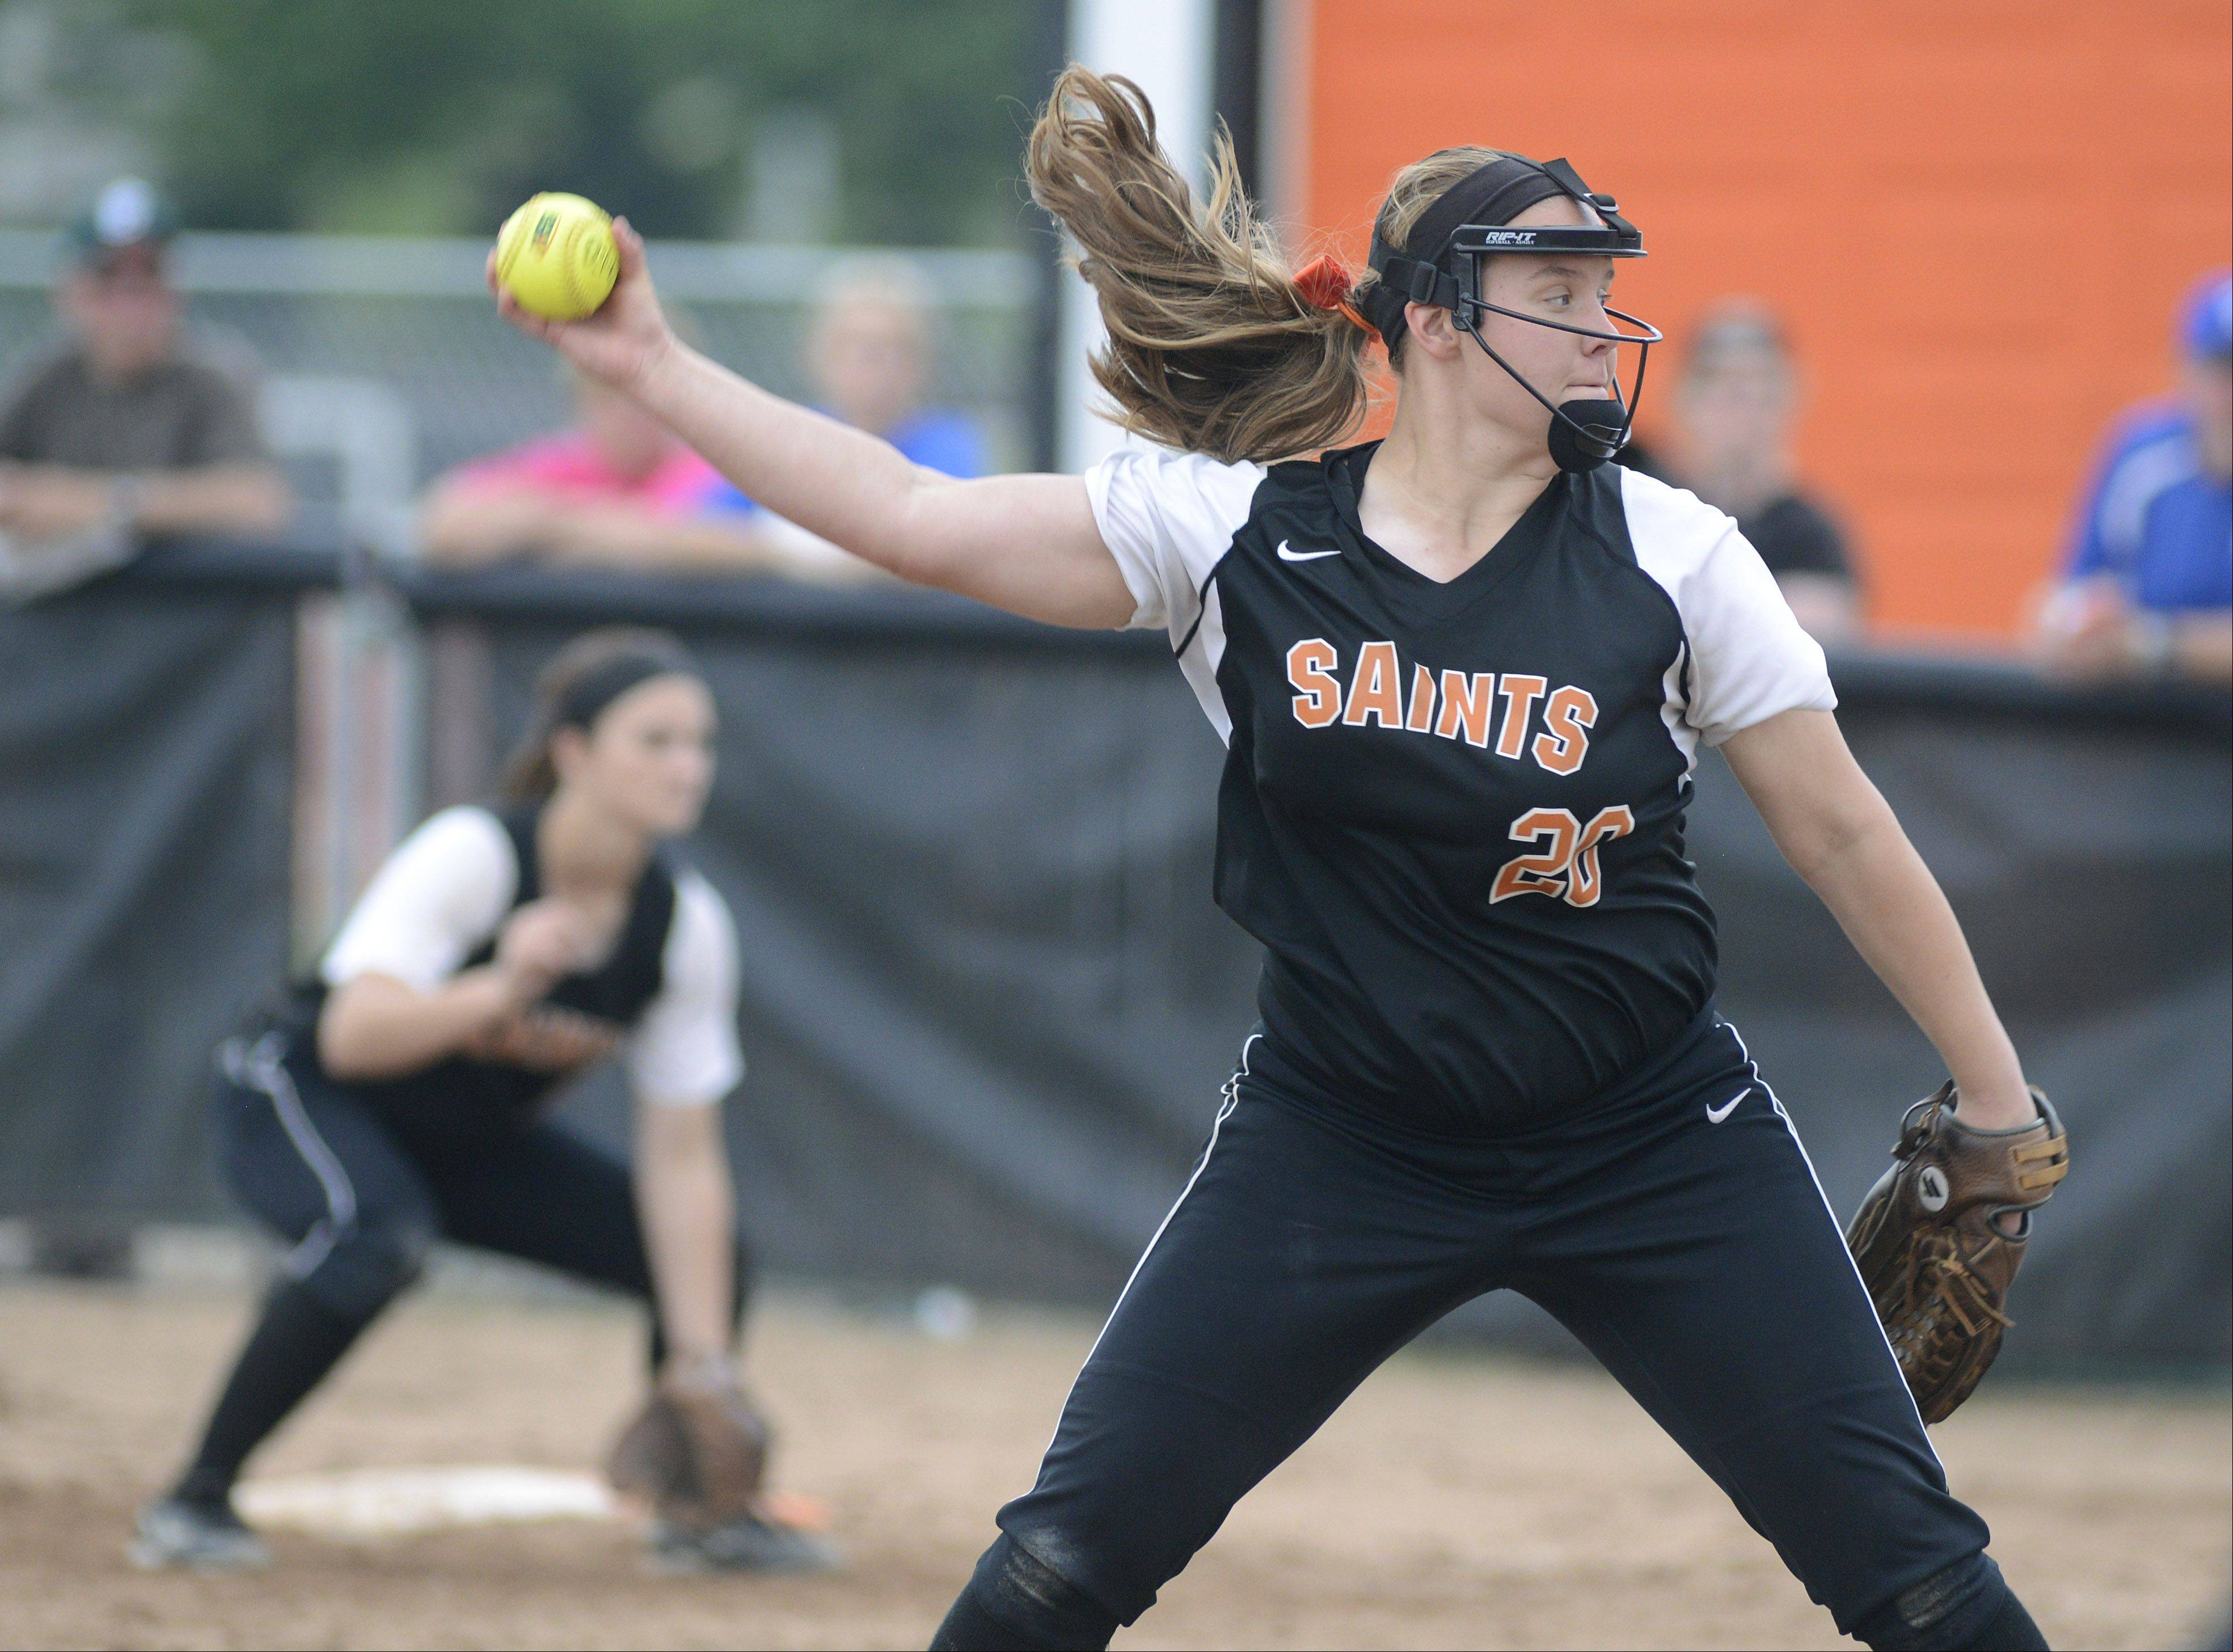 St. Charles East pitcher Haley Beno in the Class 4A sectional on Tuesday.